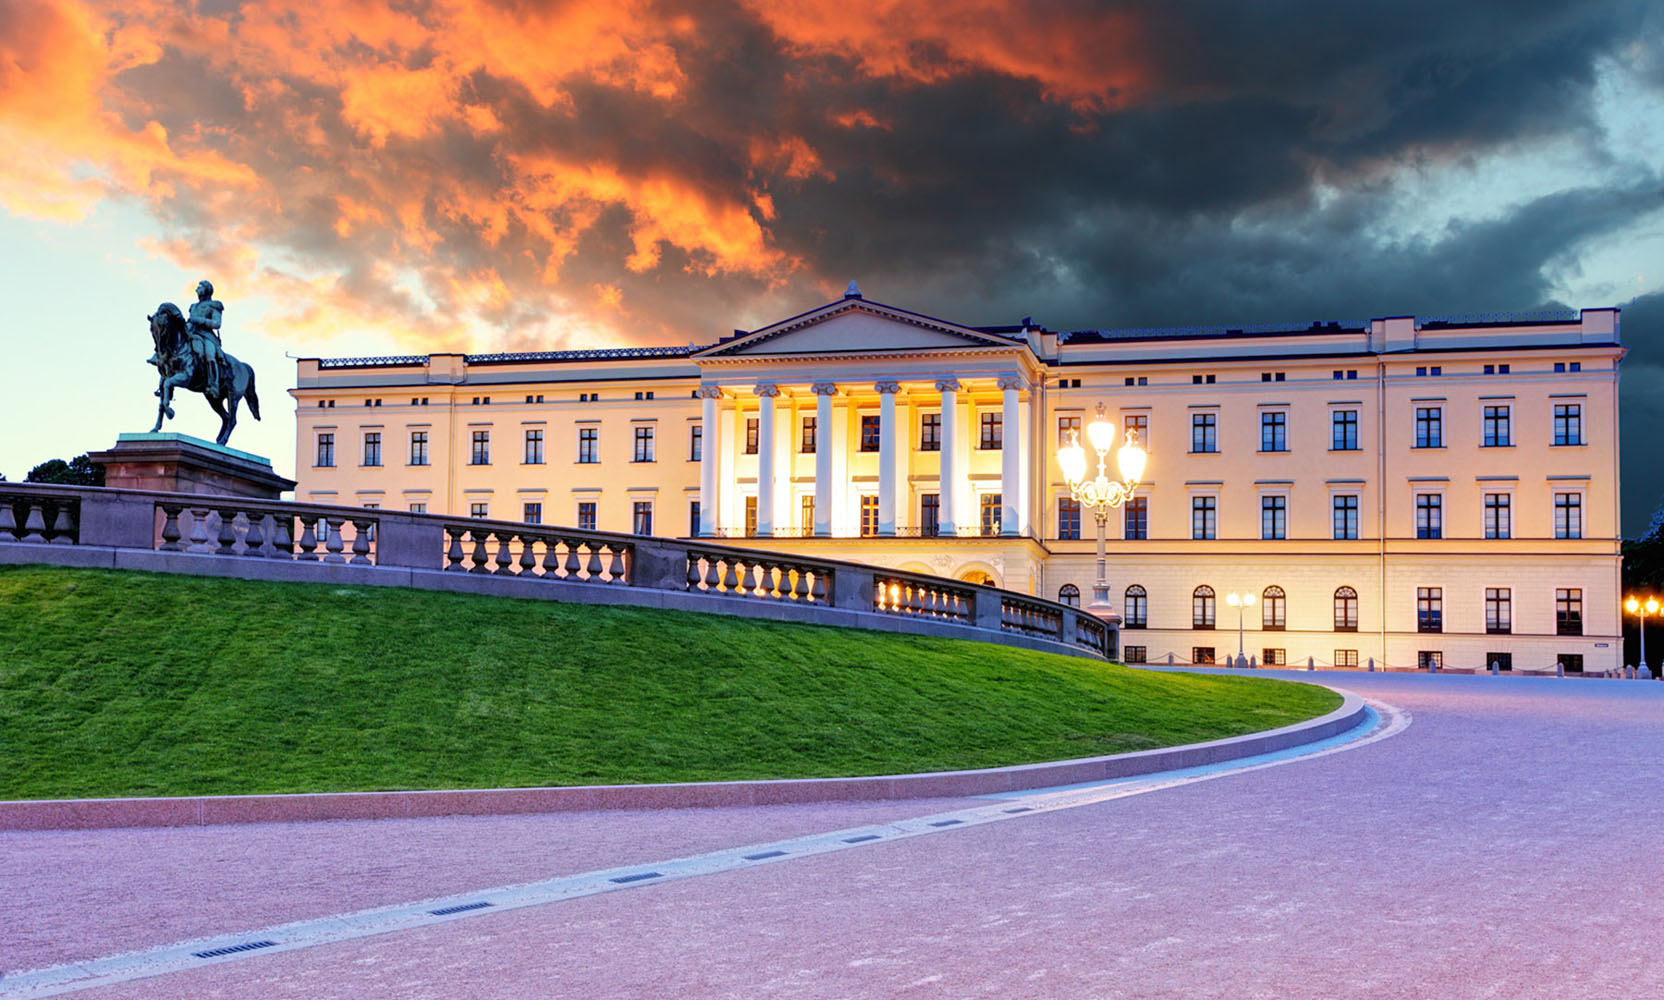 Oslo's beautiful Royal Palace.